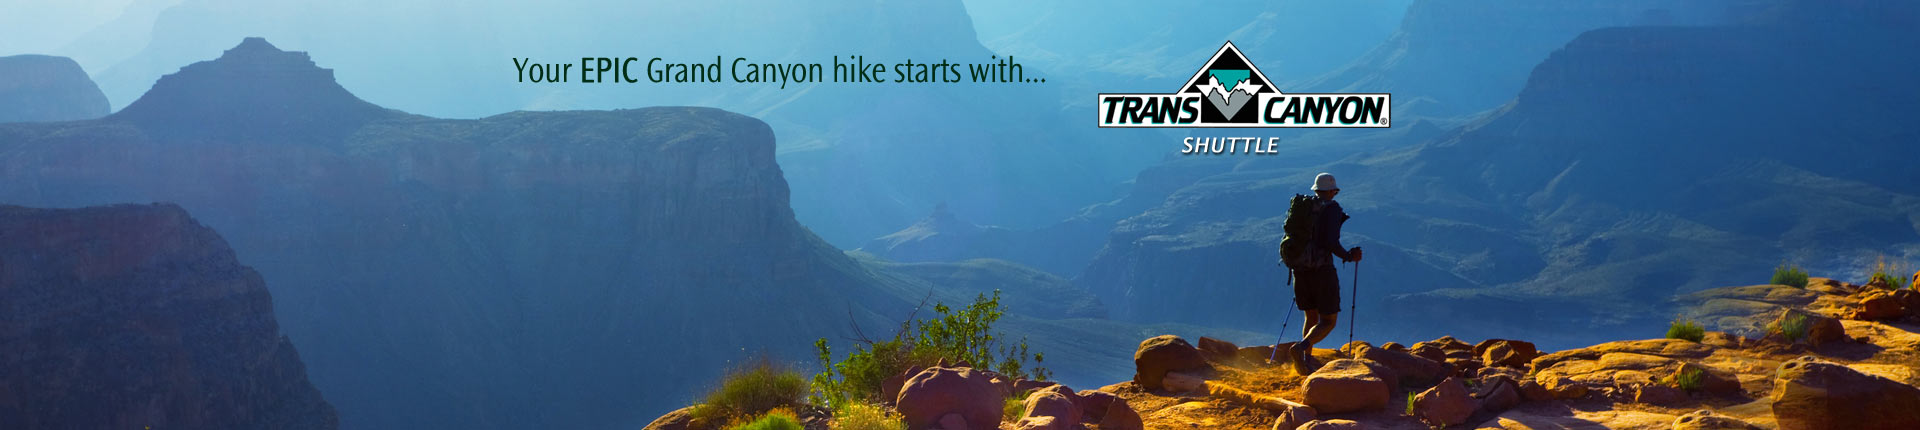 Trusted Grand Canyon Shuttle Service for Hikers